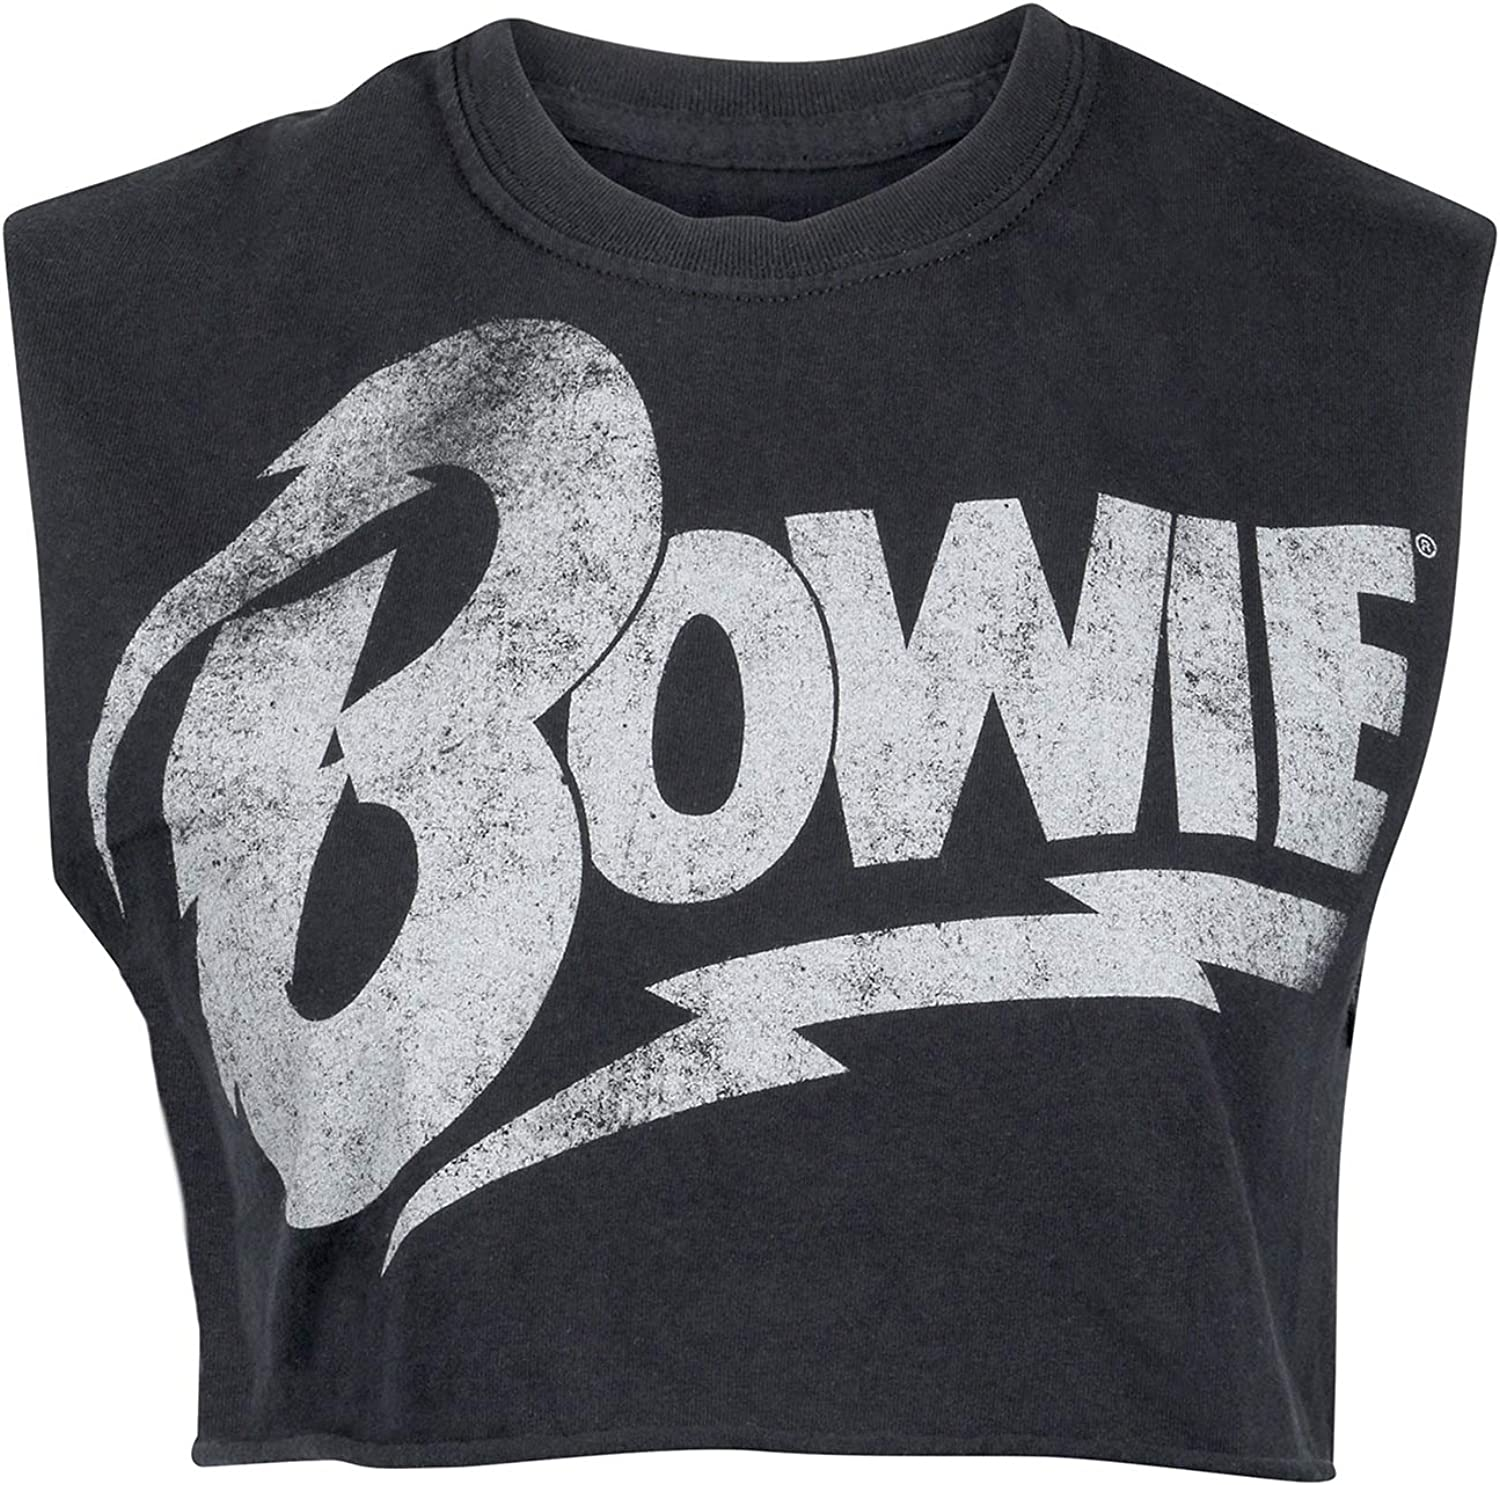 Goodie Two Sleeves Womens Black David Bowie Cropped Tee Band T-Shirt